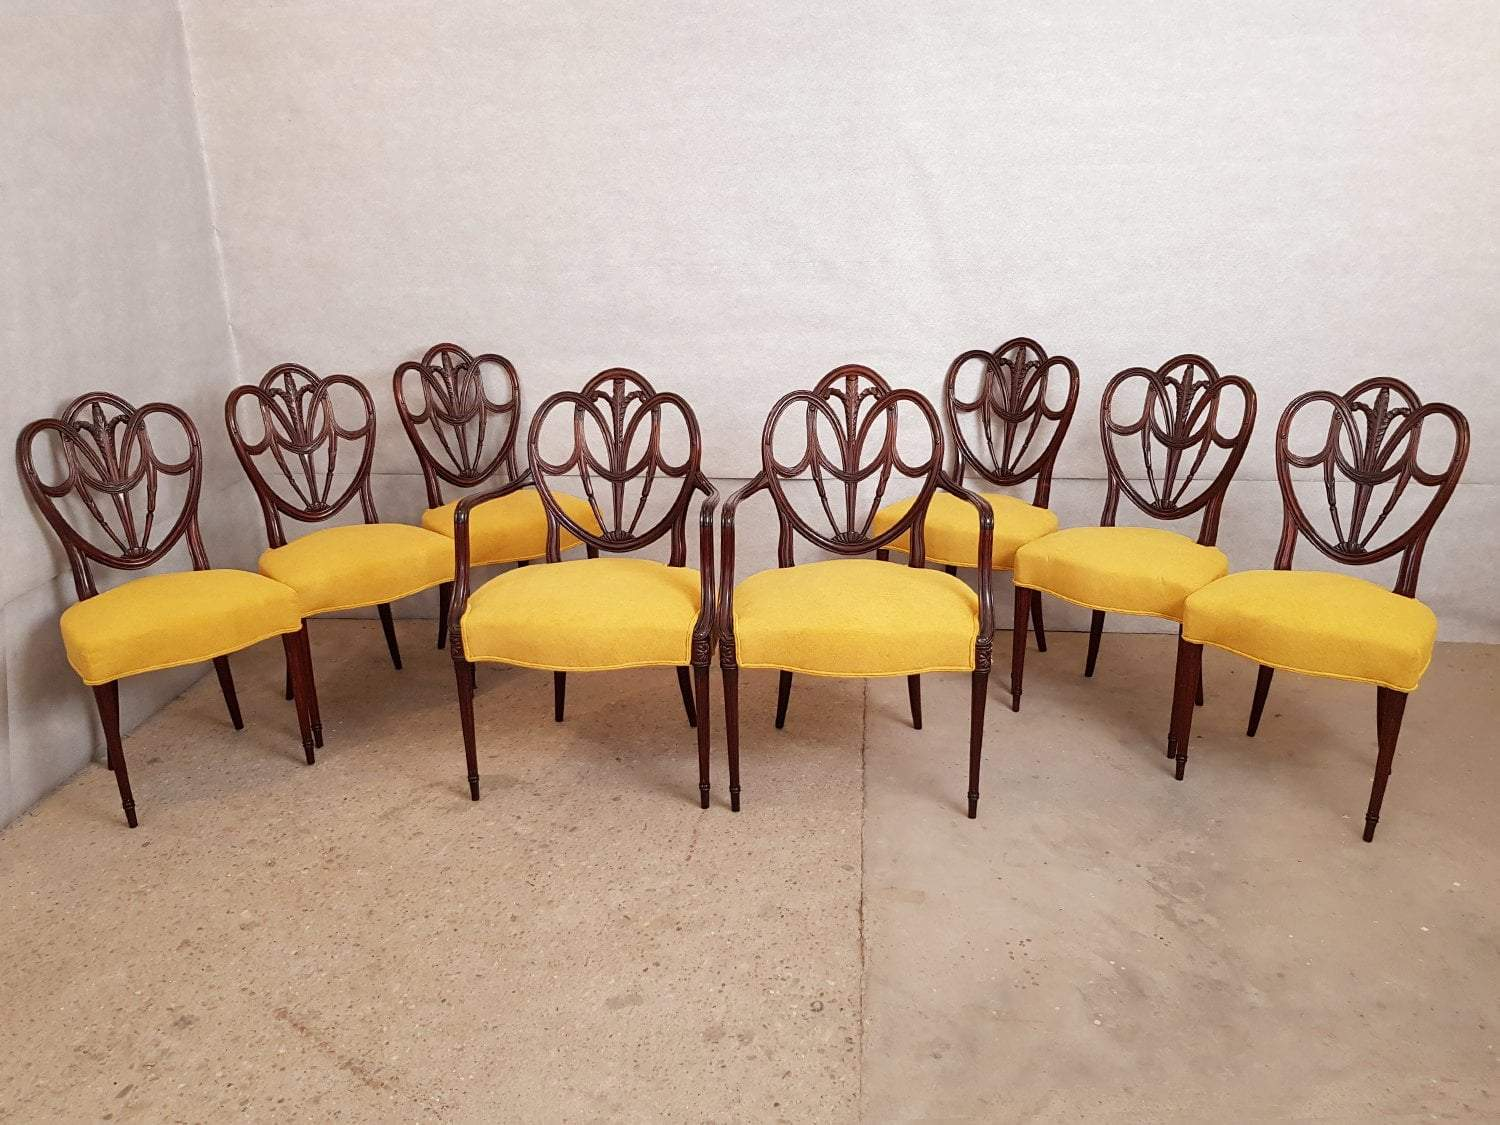 Set Of 8 Vintage Hepplewhite Style Mahogany Shield Back Reupholstered Dining Chairs Dining Chairs Reupholster Chair Dining Pink Dining Chairs